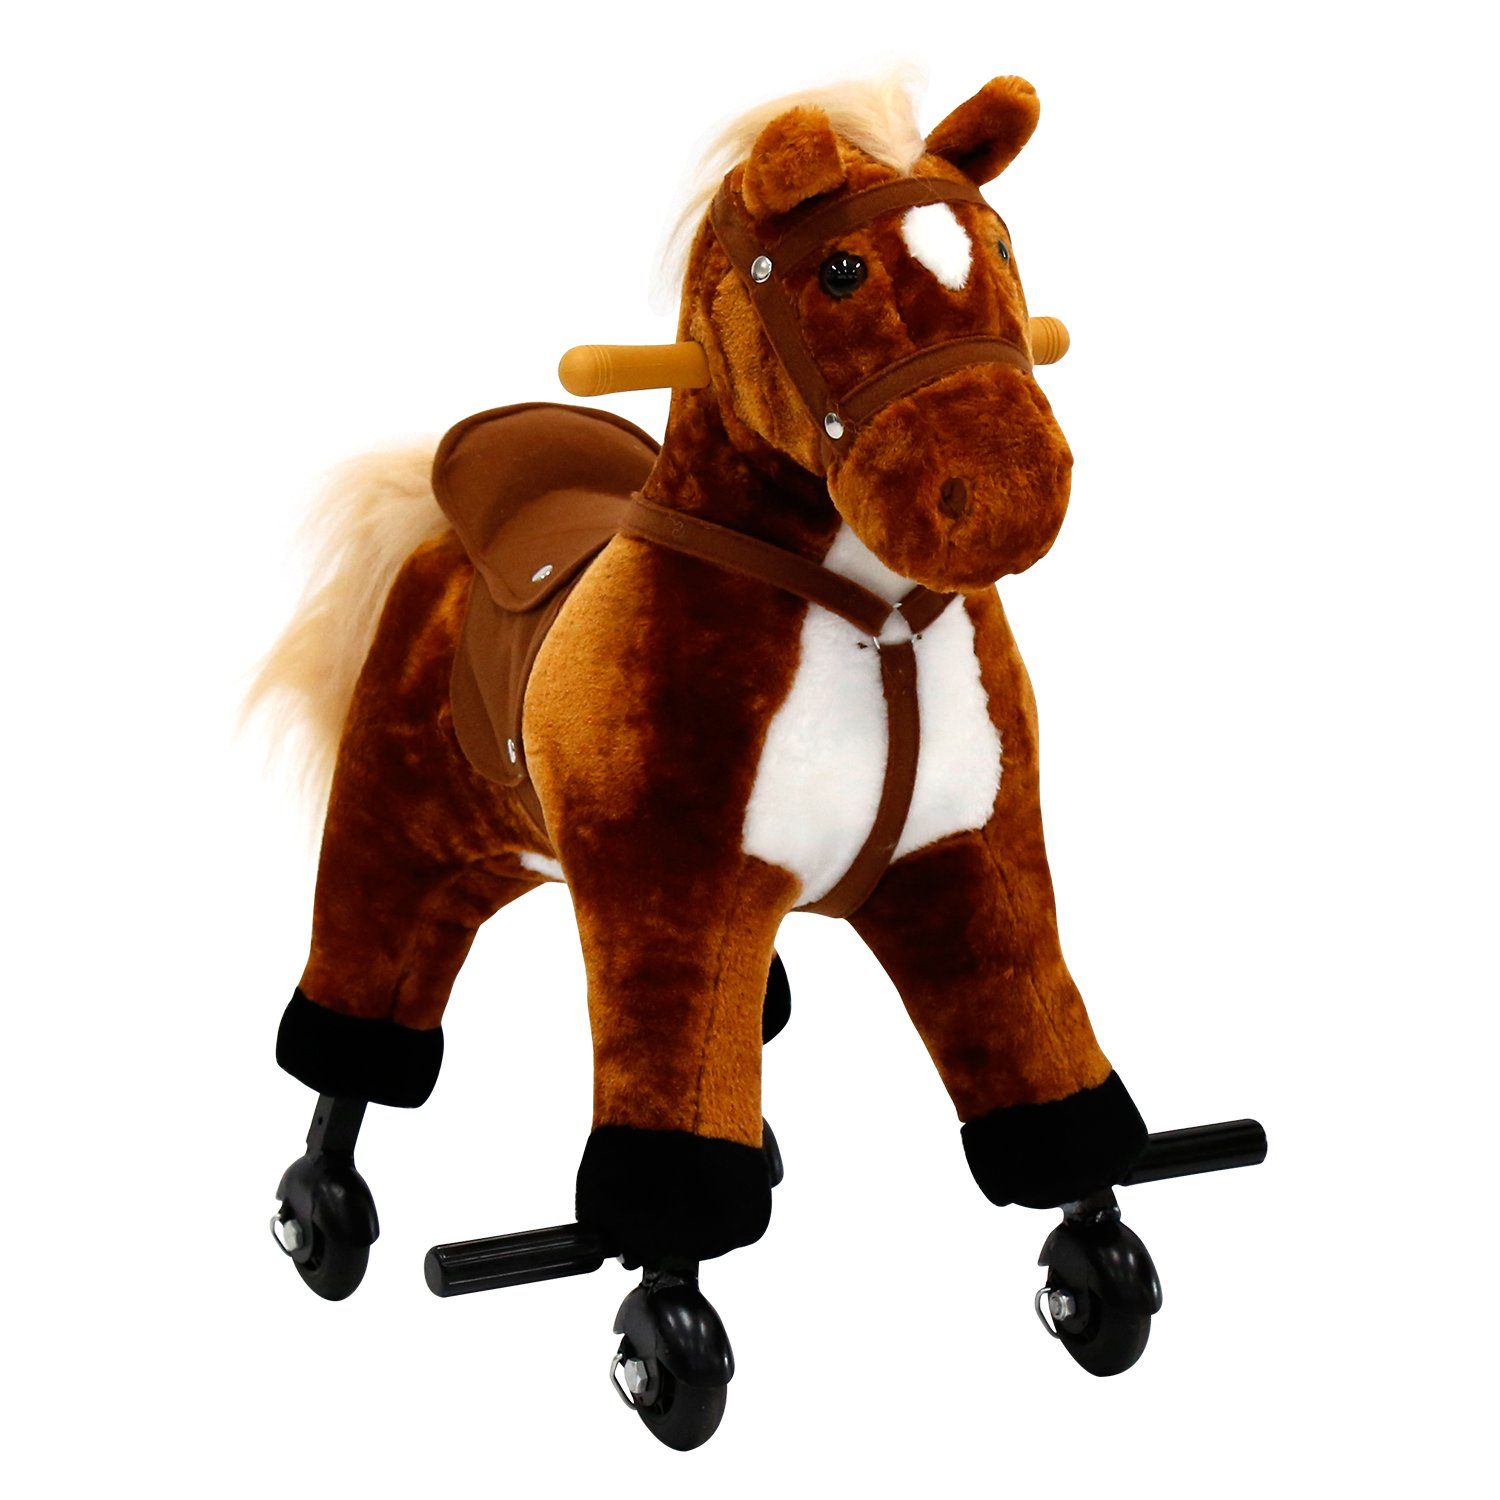 For Children's Day Gift Rocking Horse Birthday Present Kids Girls Boys Walking Pony Ride on Horse Stuffed Animal Rocker Toy Modern Outdoor Wooden Rocking Plush Neigh Sound w/Wheels,Peach Tree